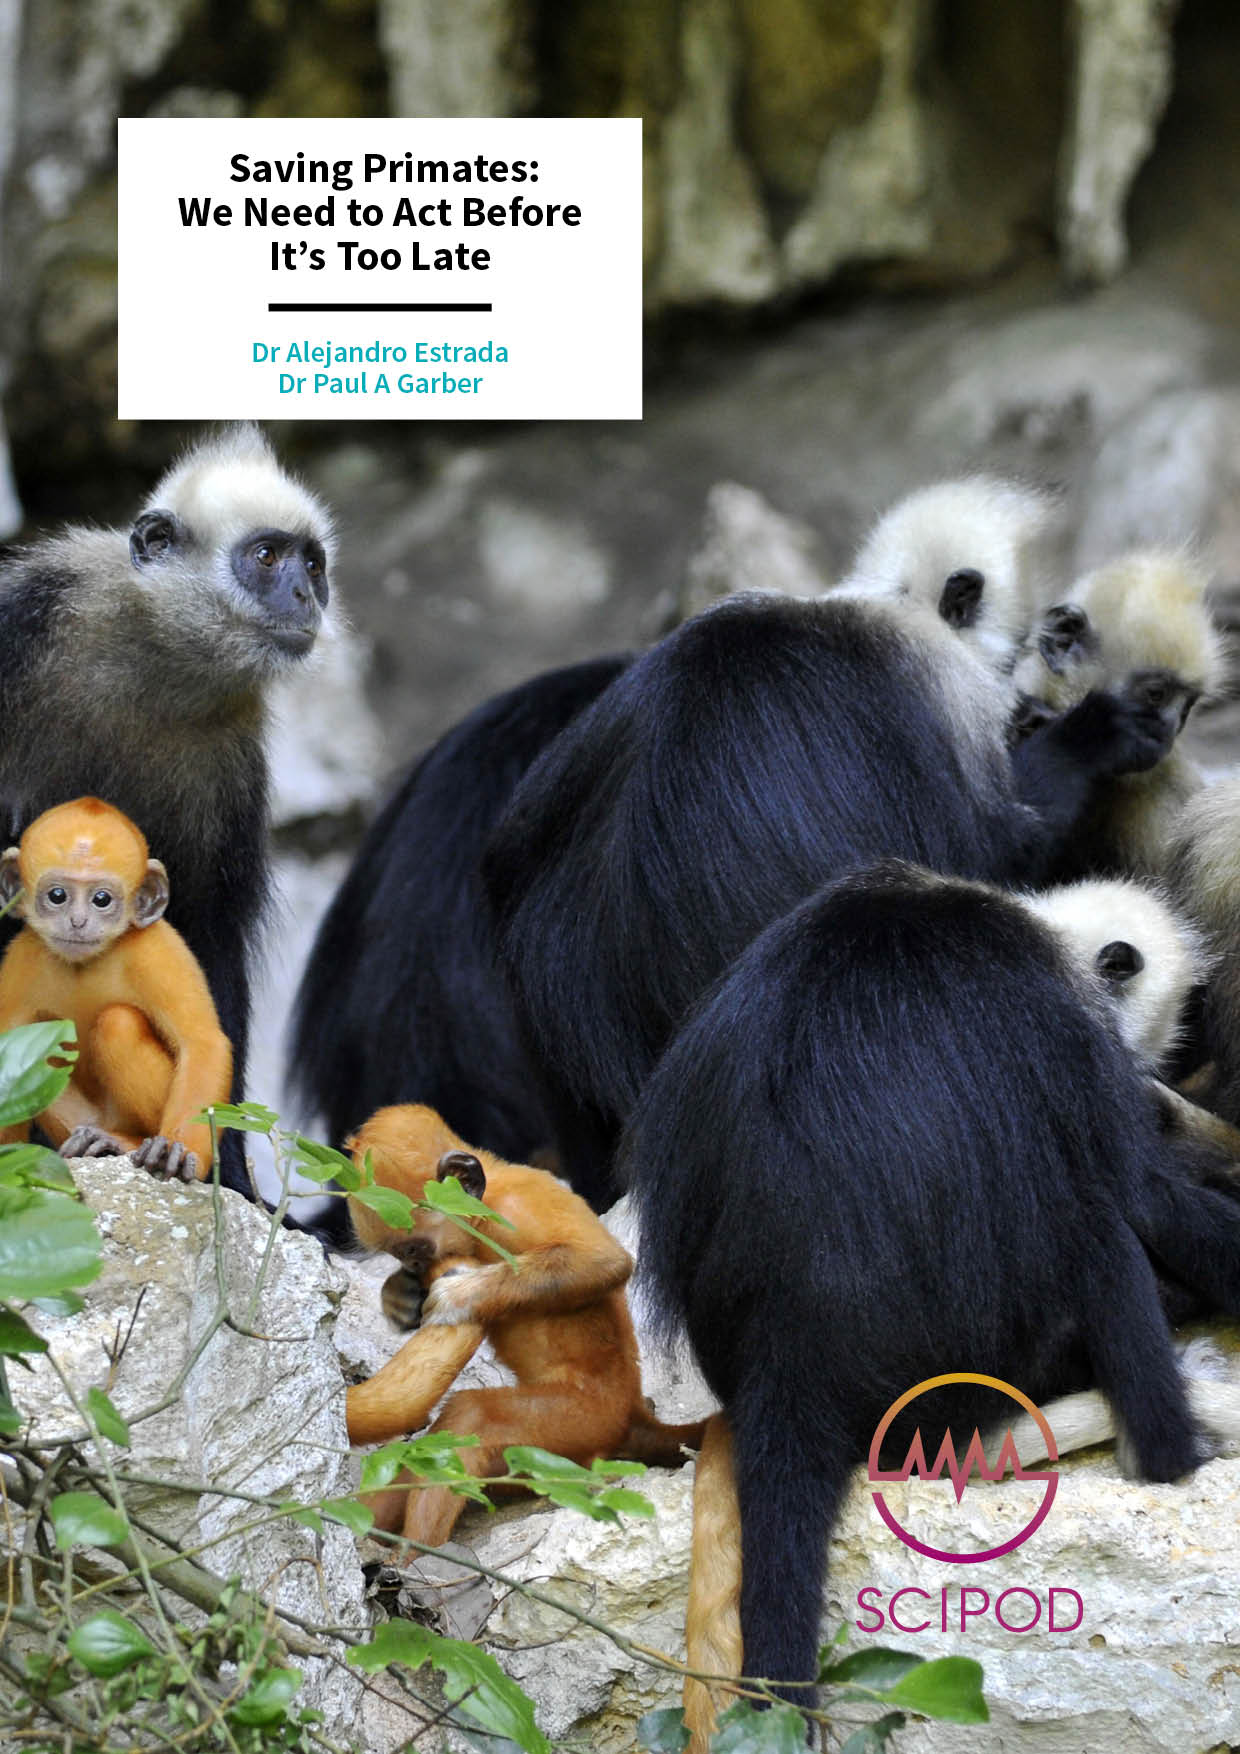 Saving Primates We Need to Act Before It's Too Late – Drs Alejandro Estrada and Paul A Garber